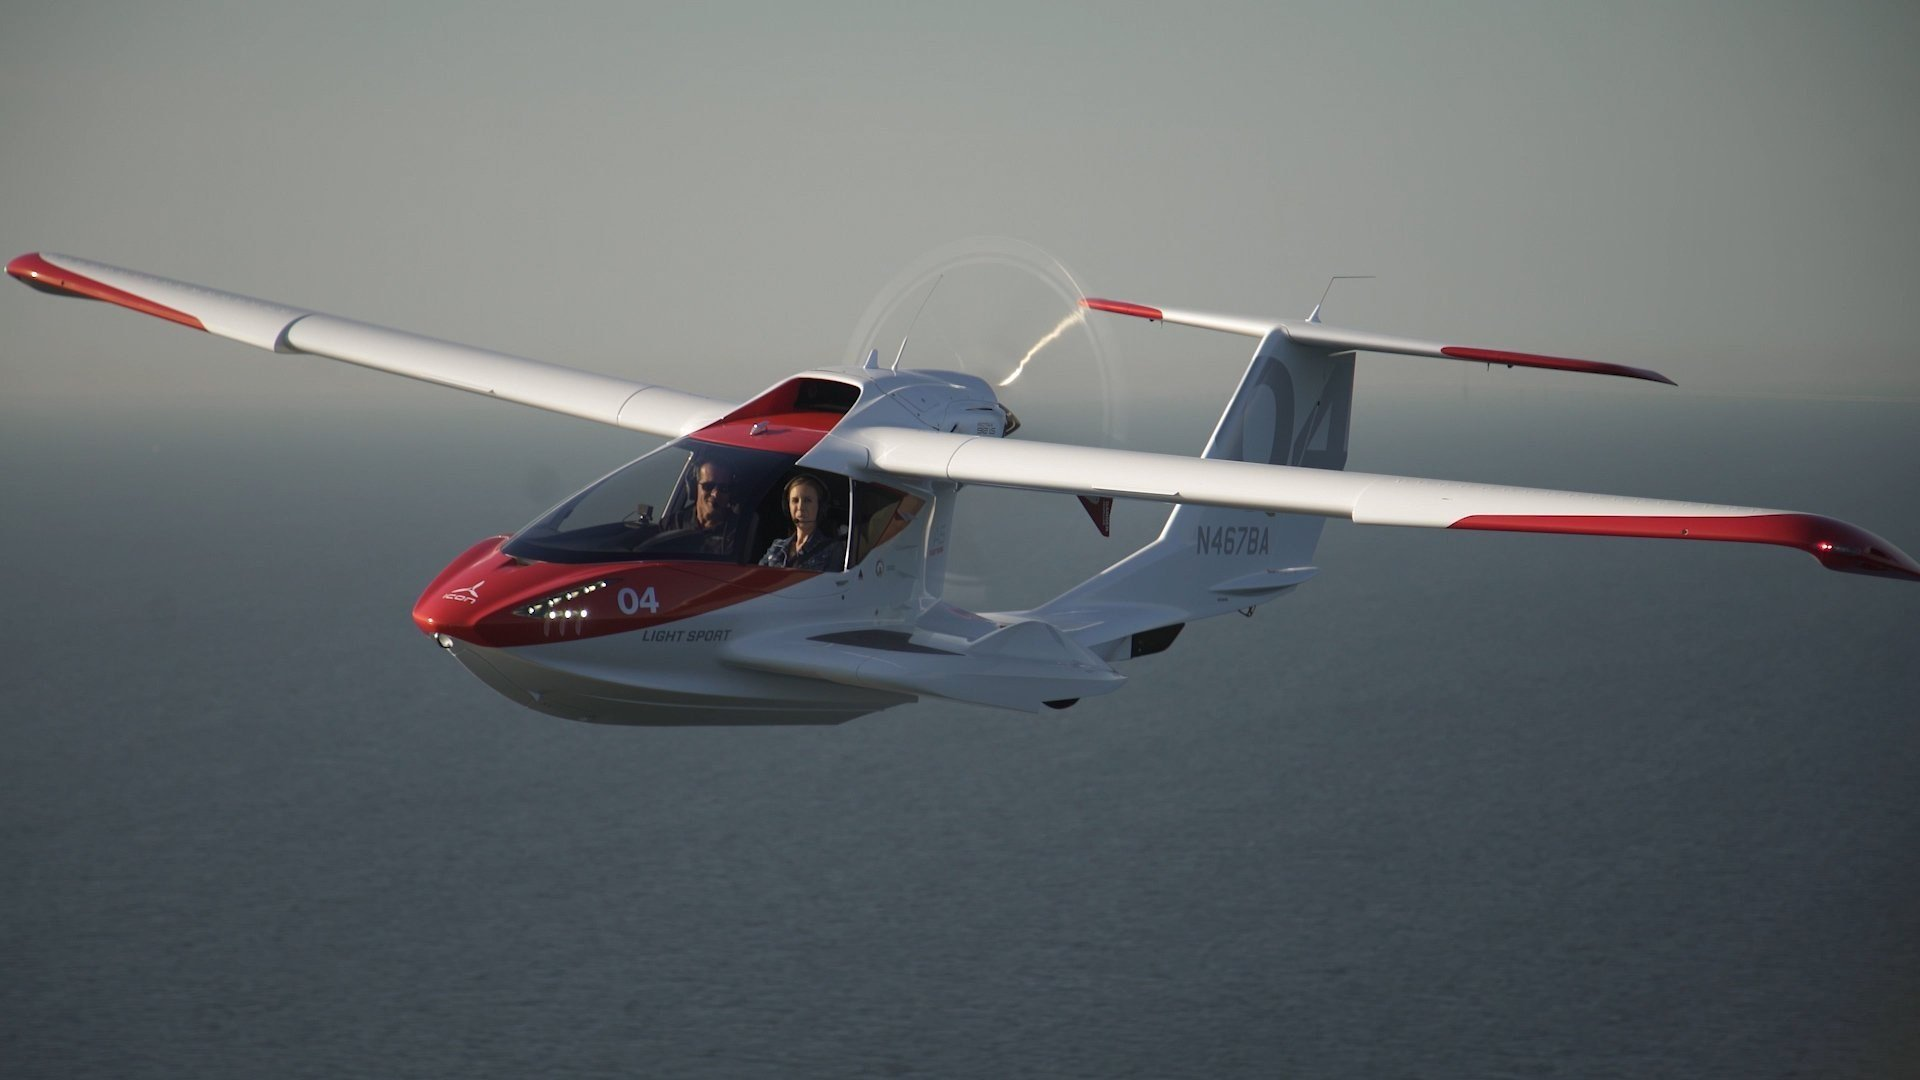 Designed to make flying simple, the Icon A5 has been described as a sports car with wings that maneuvers like a Jet Ski.